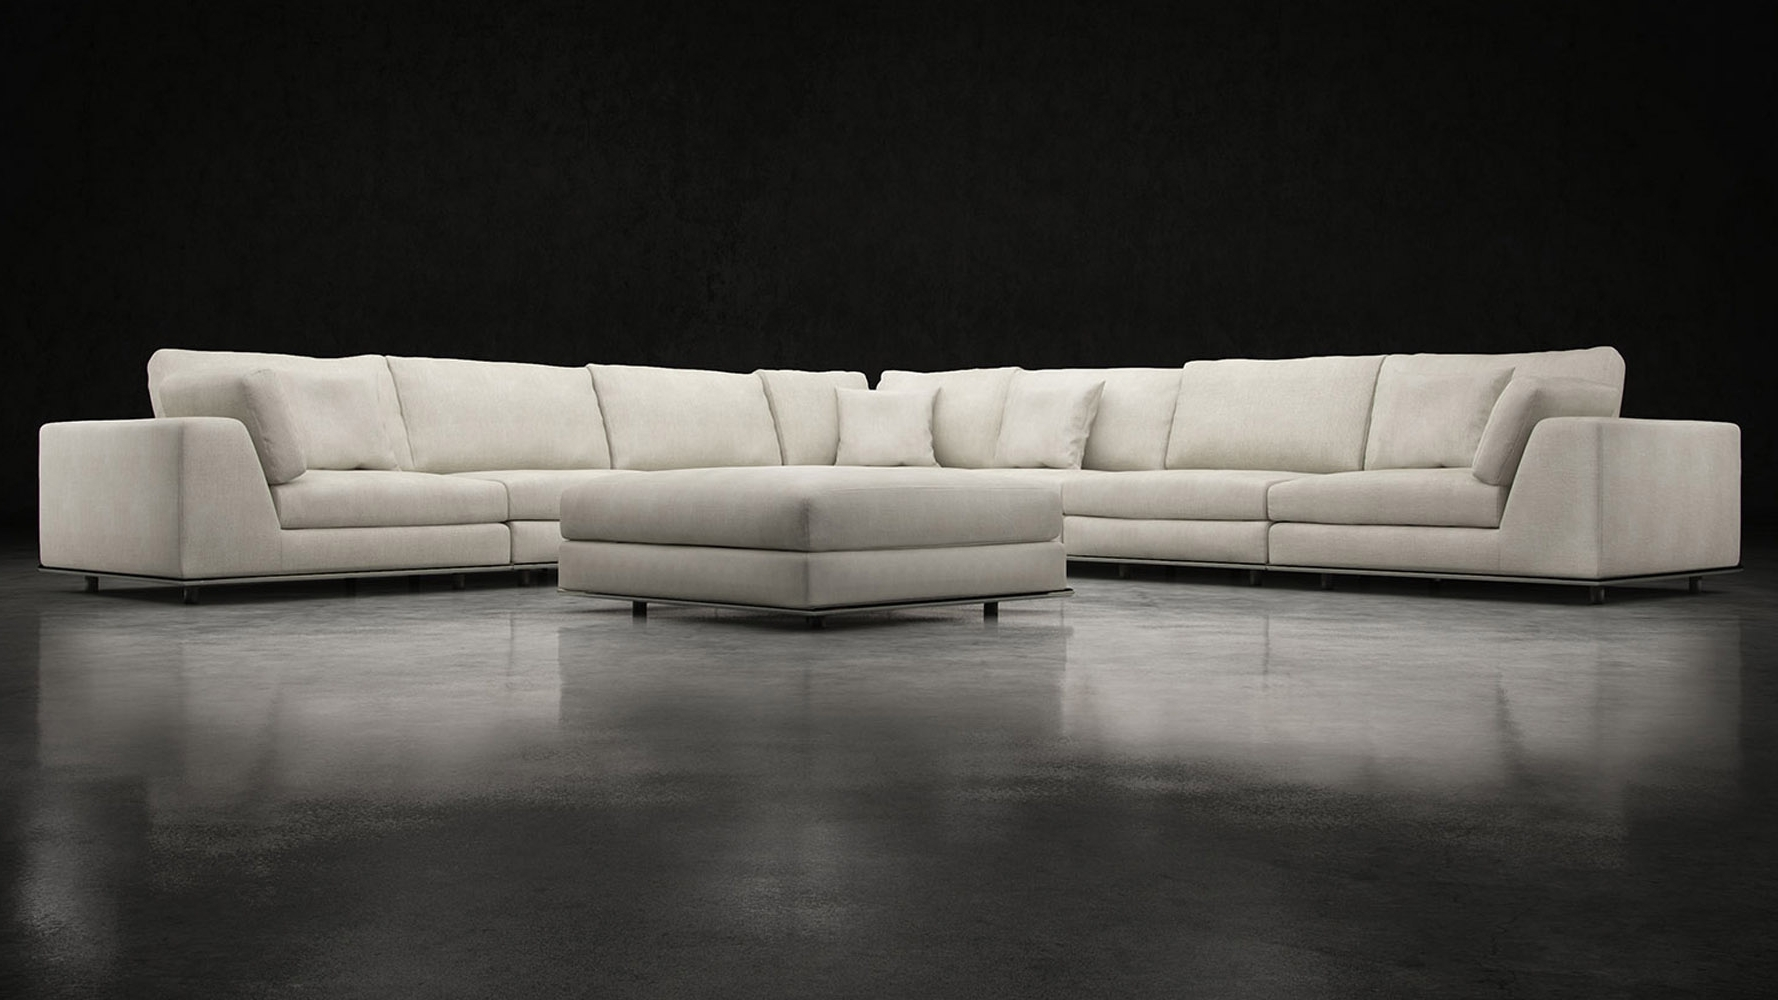 Furniture : 5060 Recliner Sectional Sofa Costco $699 Corner Couch With Well Known Joining Hardware Sectional Sofas (View 4 of 20)